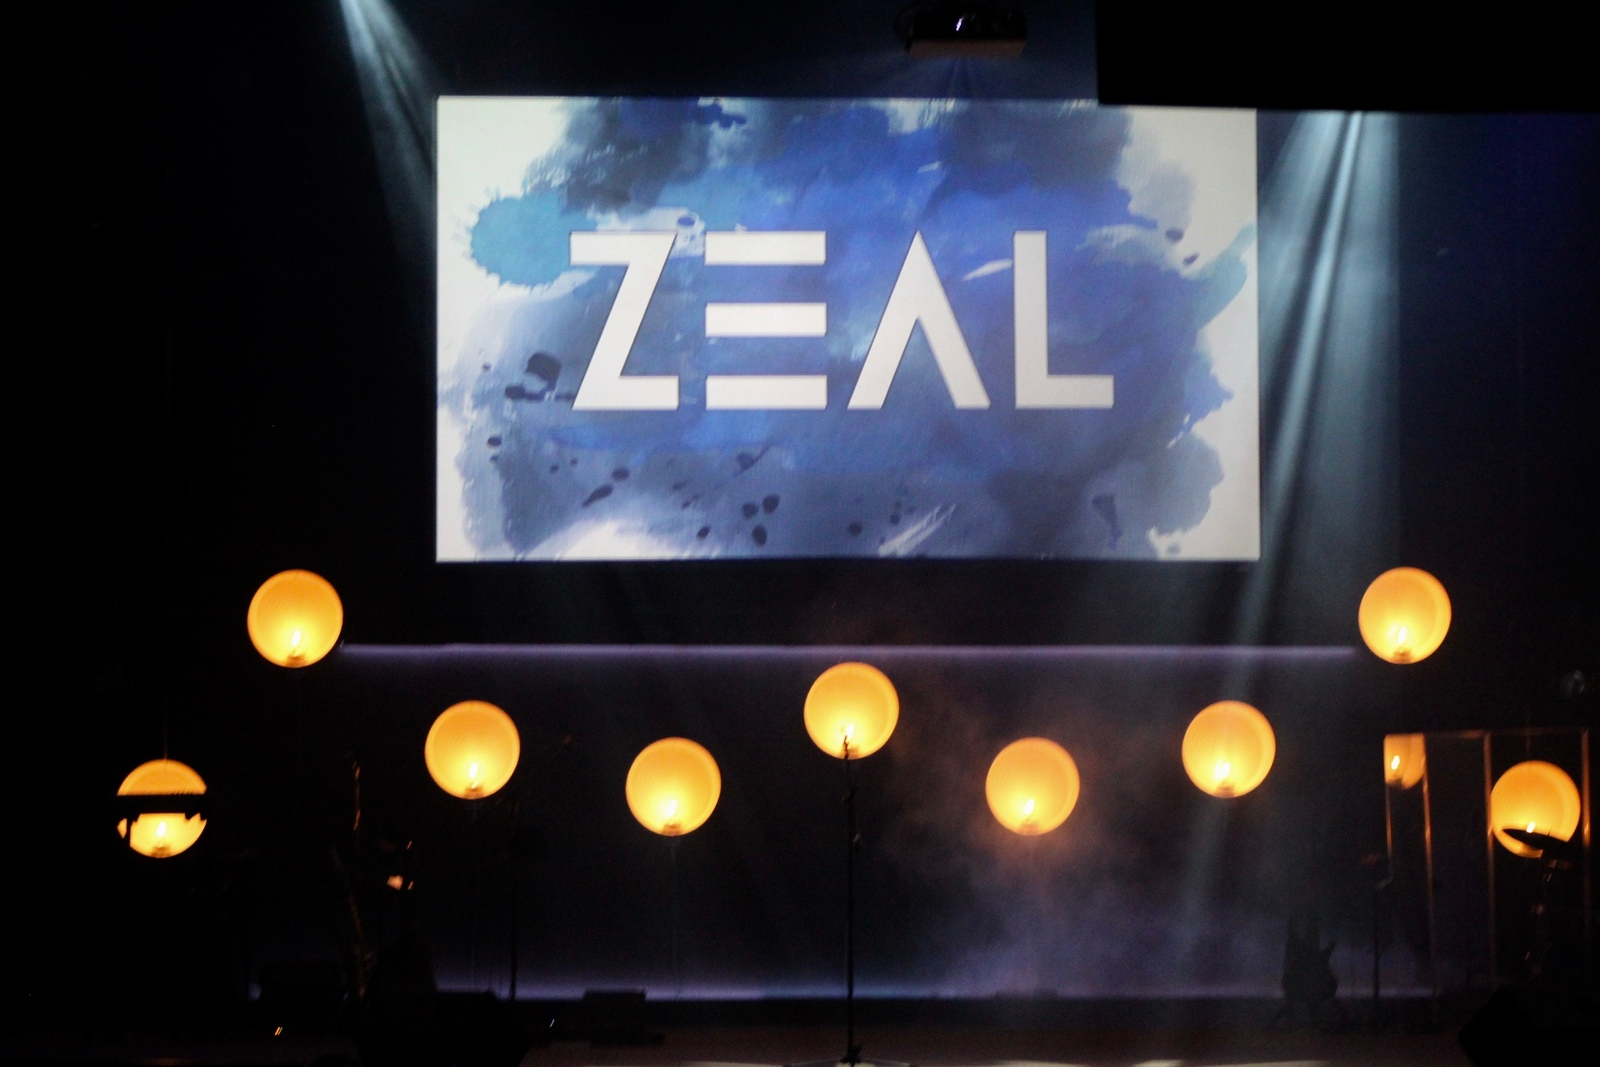 19-03-27 ZEAL NIGHT